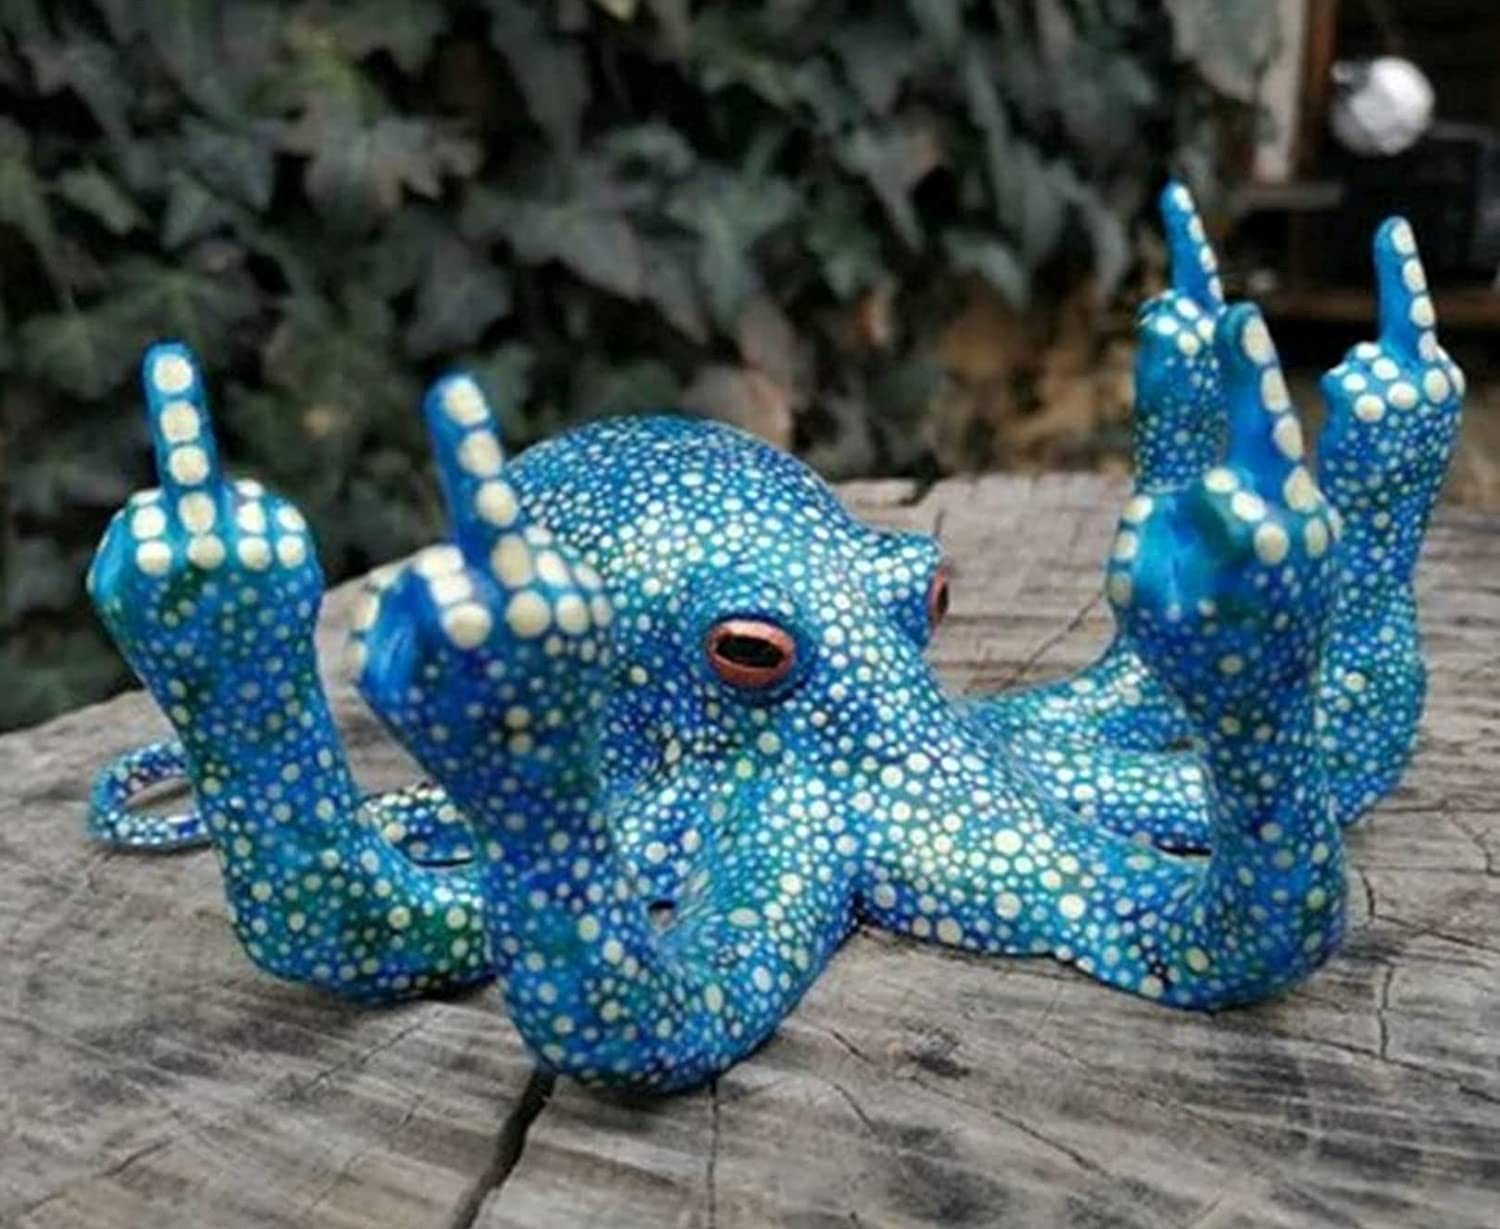 Octopus with Mother of Pearl - Multiple Colour, Luminous Octopus with Middle Finger, Glow in The Dark Octopus for Garden Indoor Outdoor Home Decoration, Luminescent Novelty Table Decors (Blue)